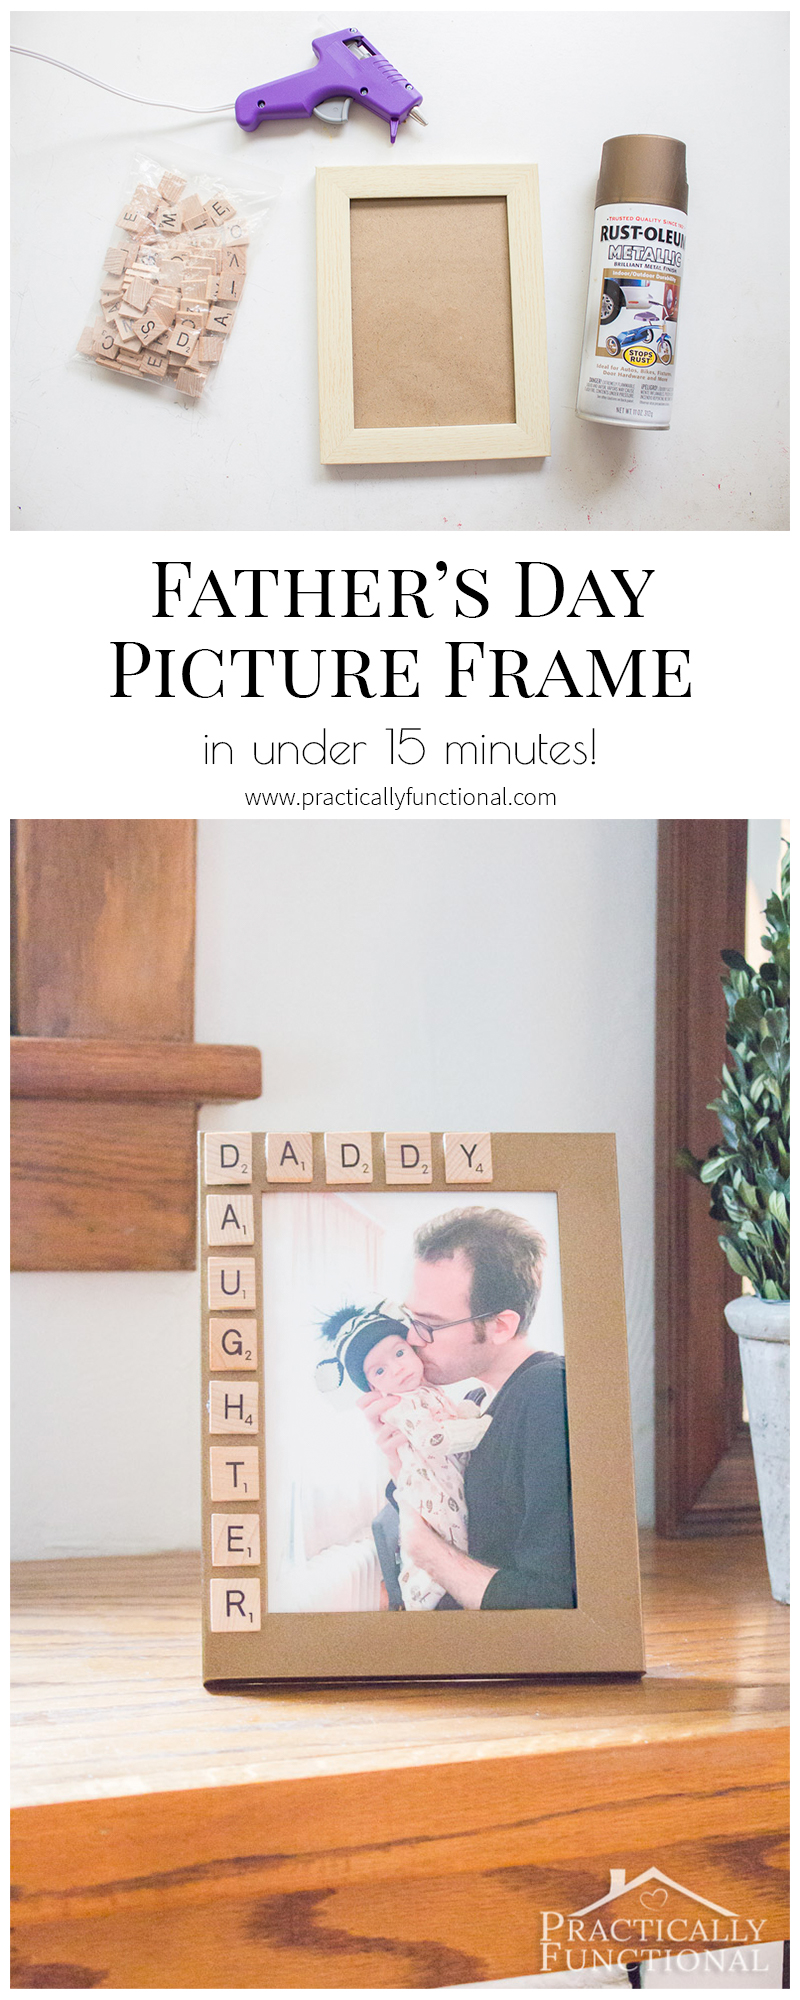 Super cute Father's Day picture frame idea; he can take it to the office and you can update the photo every once in a while so he always has a current photo with him!